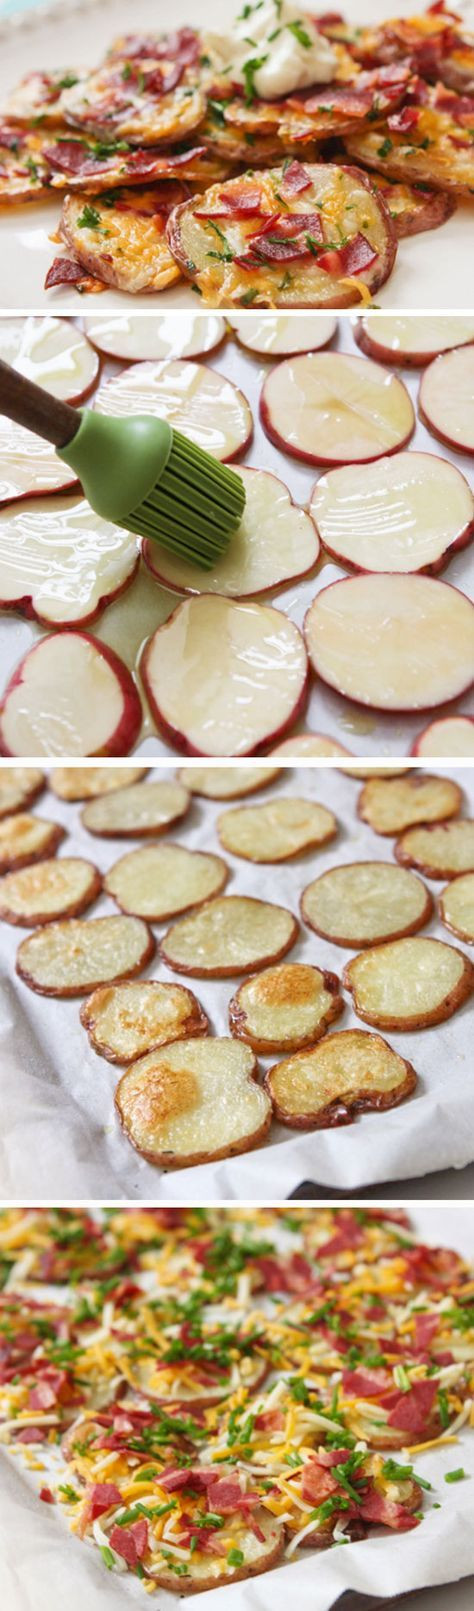 Easy Christmas Eve Appetizers  17 Best ideas about Christmas Eve Appetizers on Pinterest